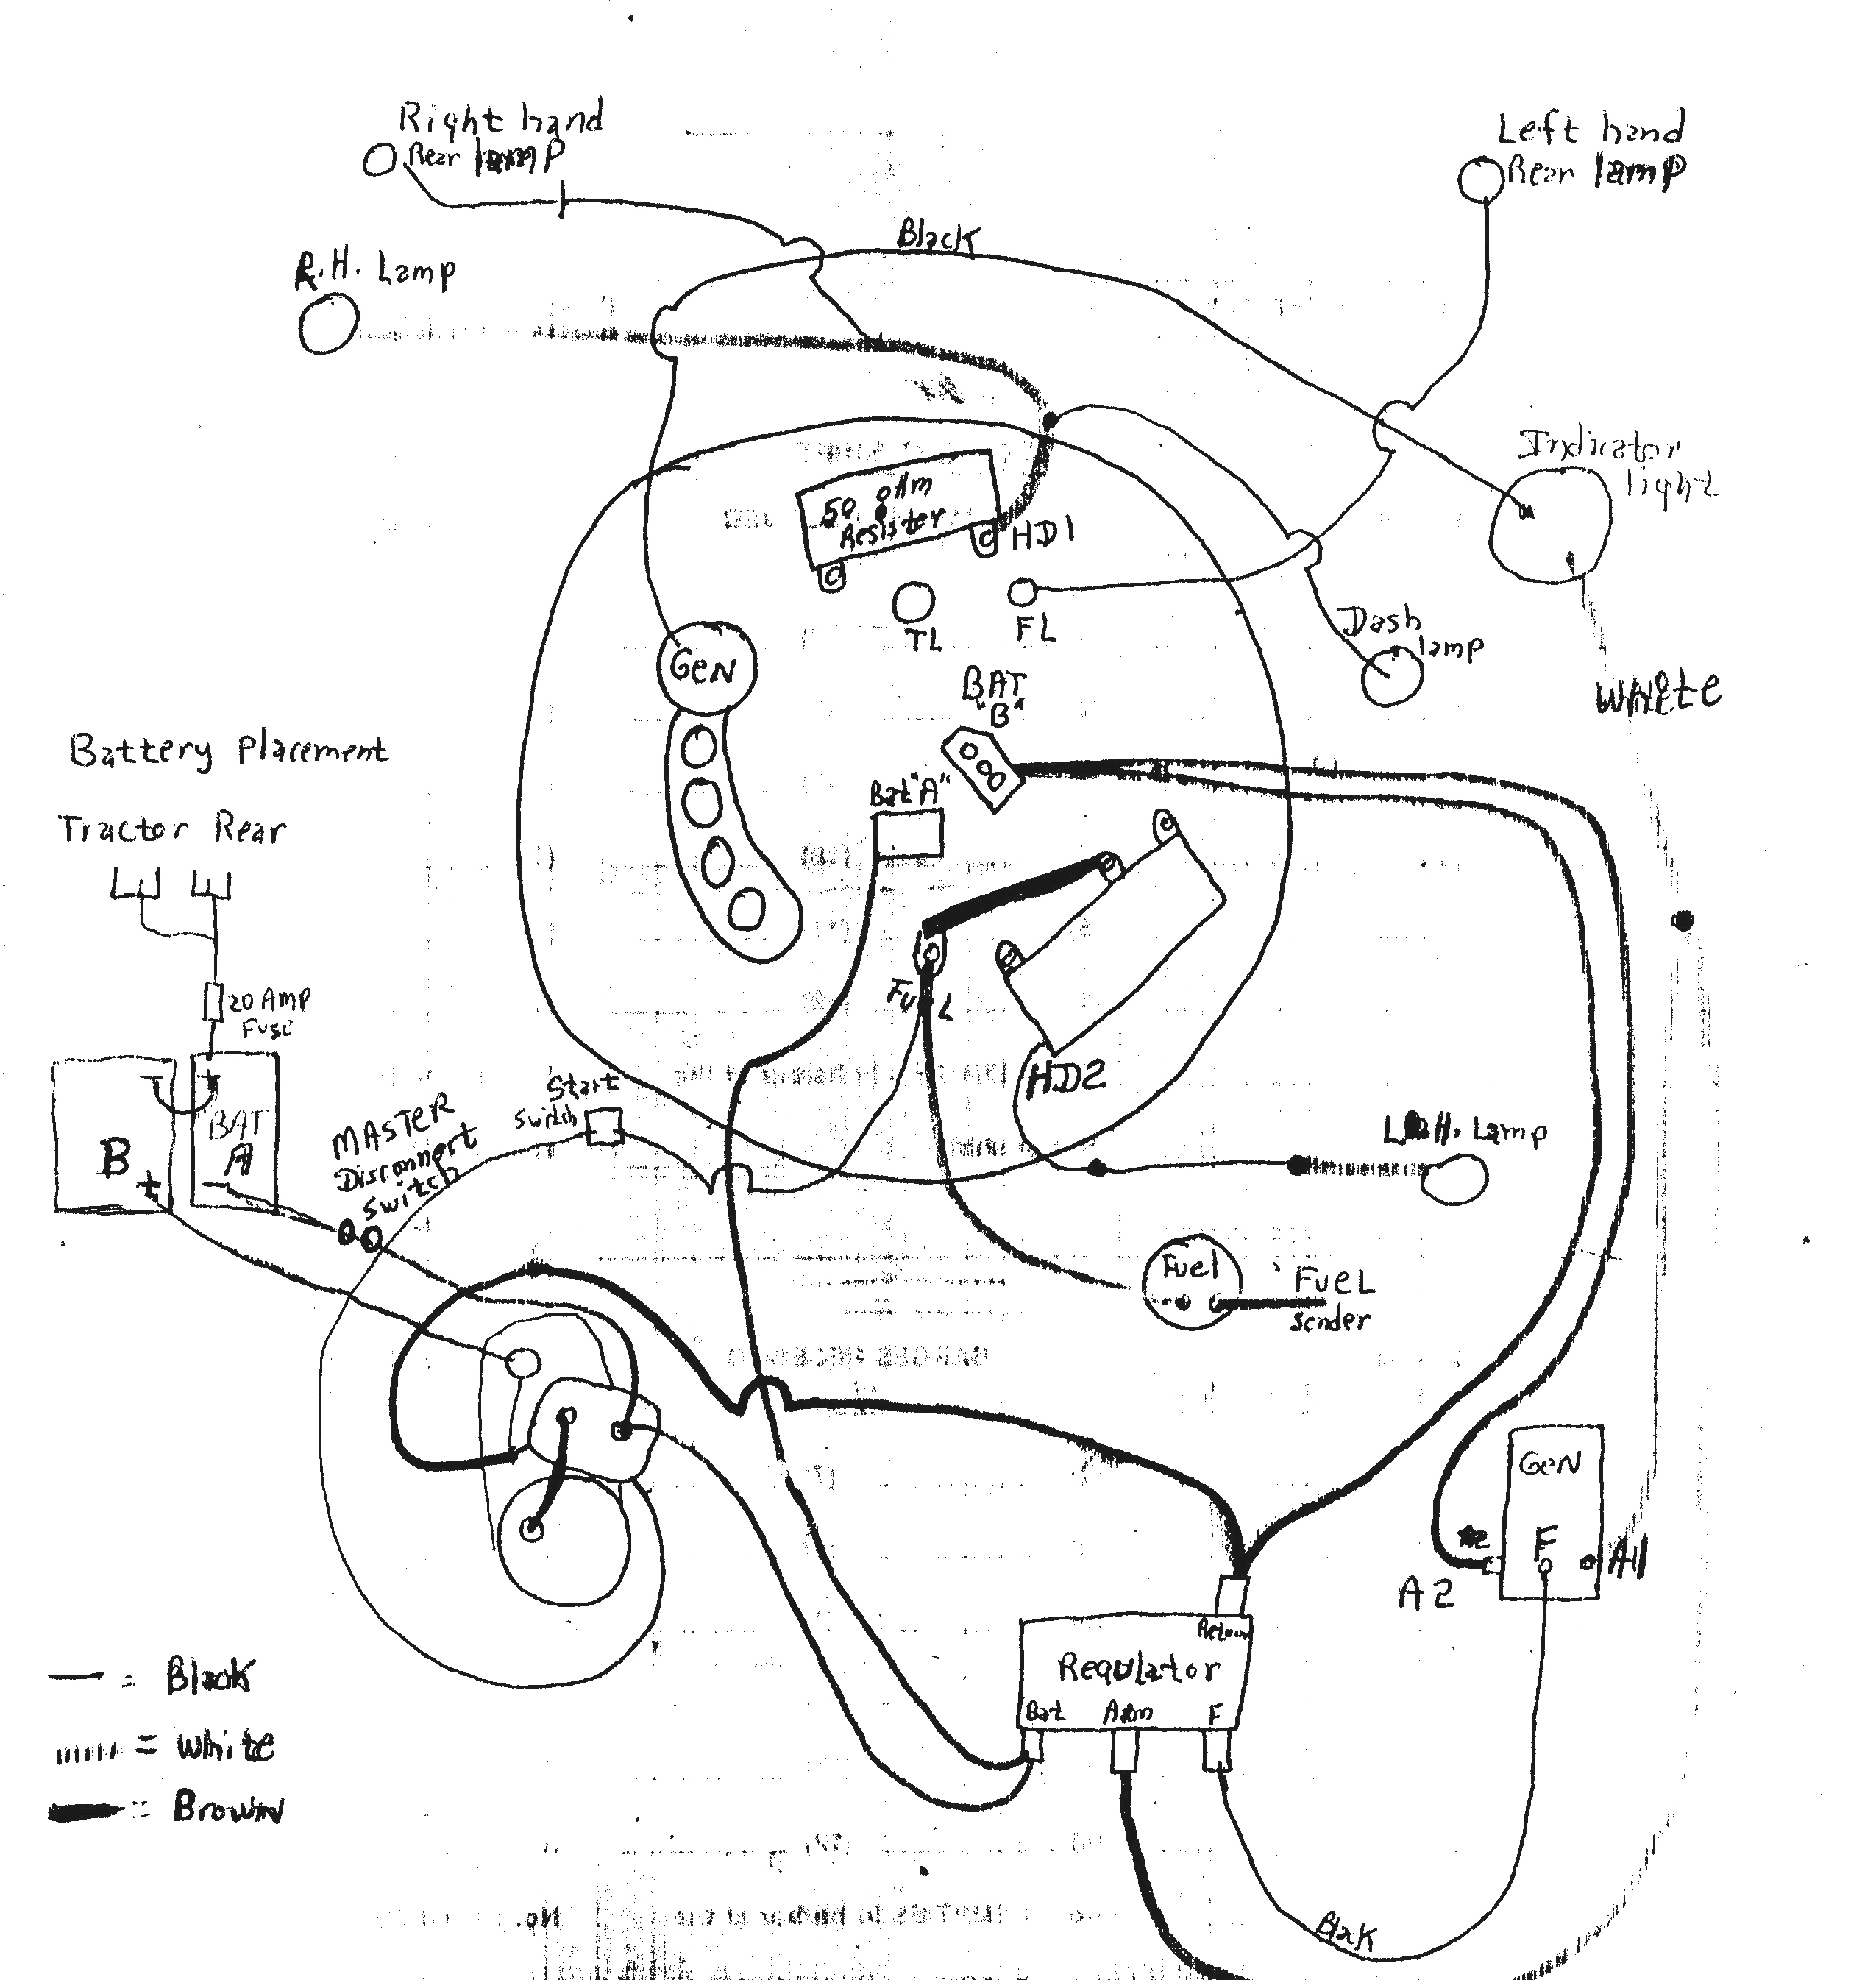 John Deere Sabre Mower Wiring Diagram Illustration Of Lawn Images Gallery